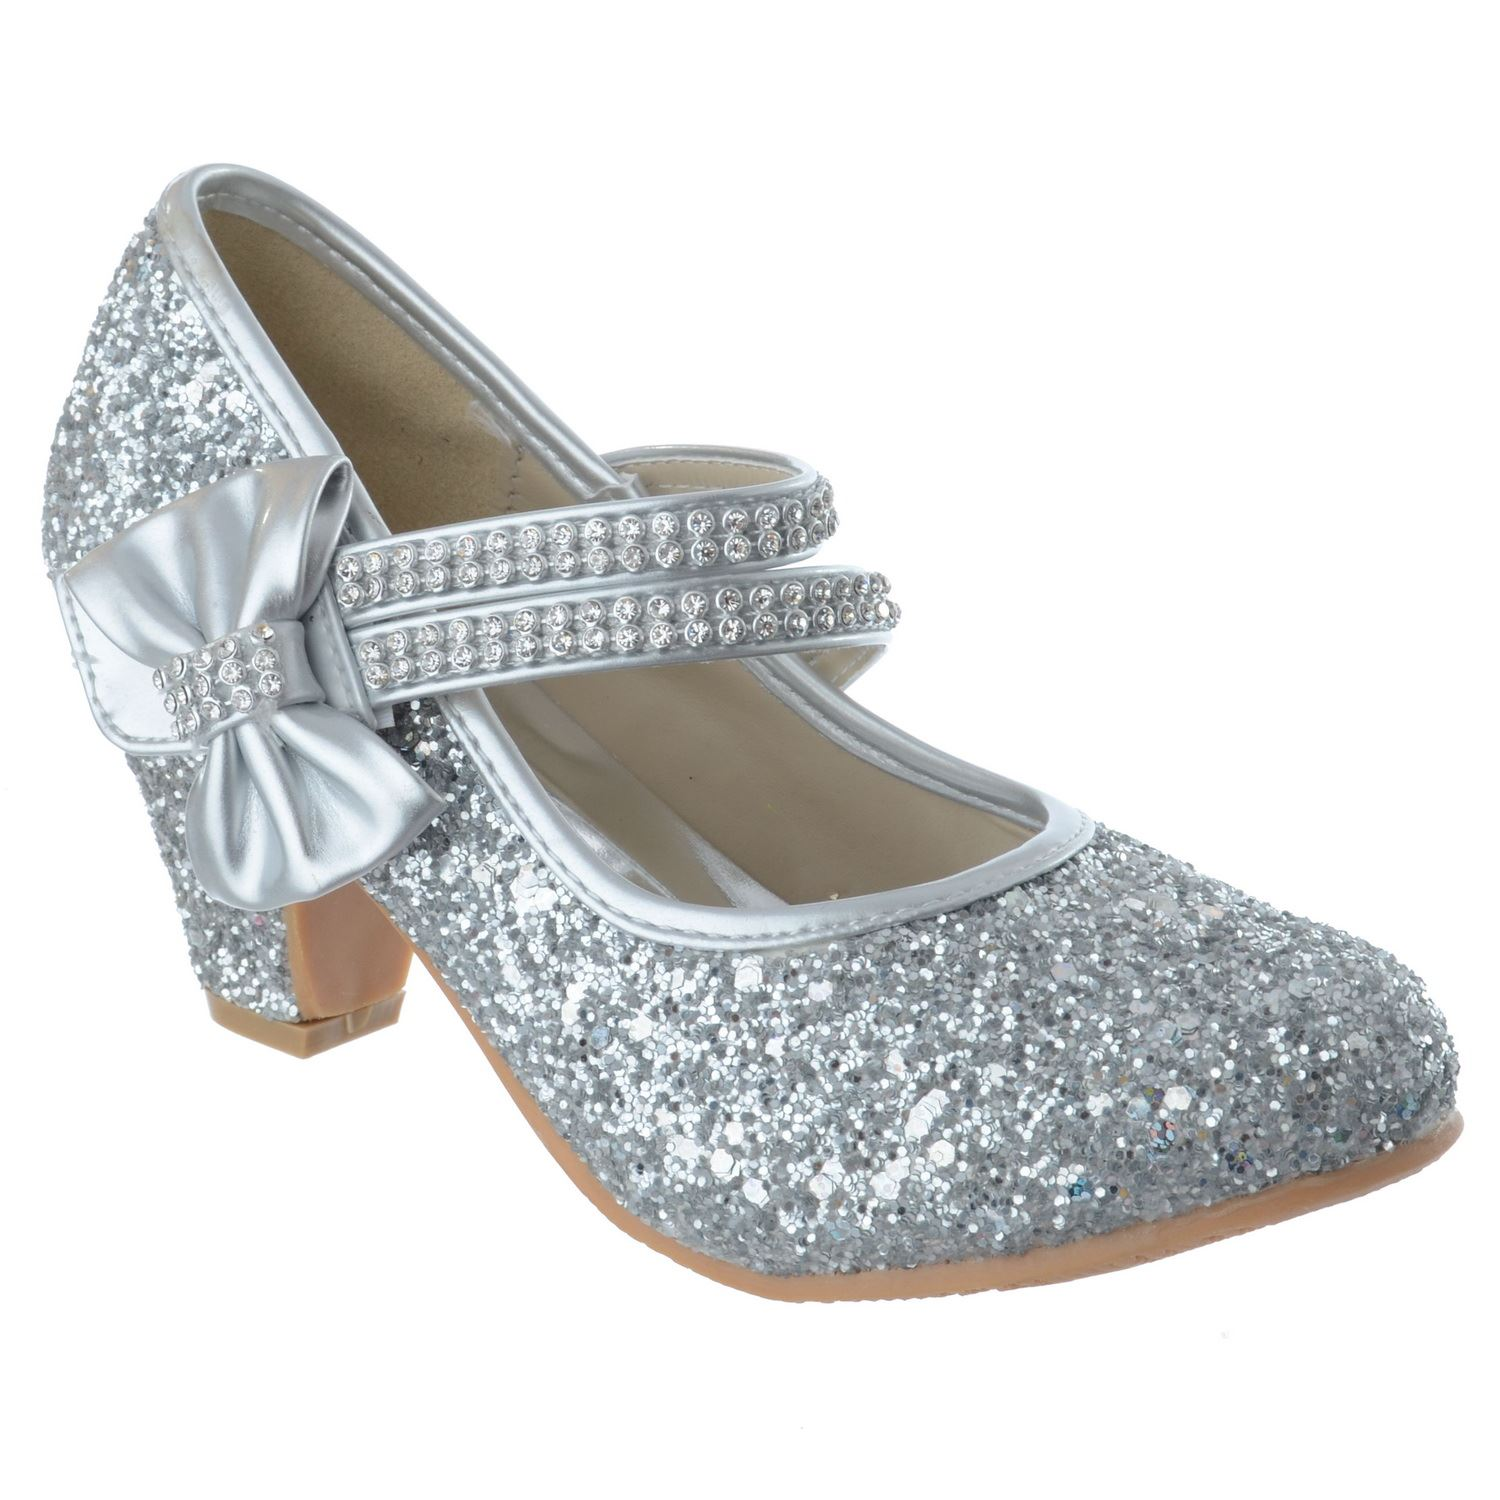 GIRLS KIDS LOW HEEL PARTY WEDDING DIAMANTE GLITTER MARY JANE COURT SHOES SIZE